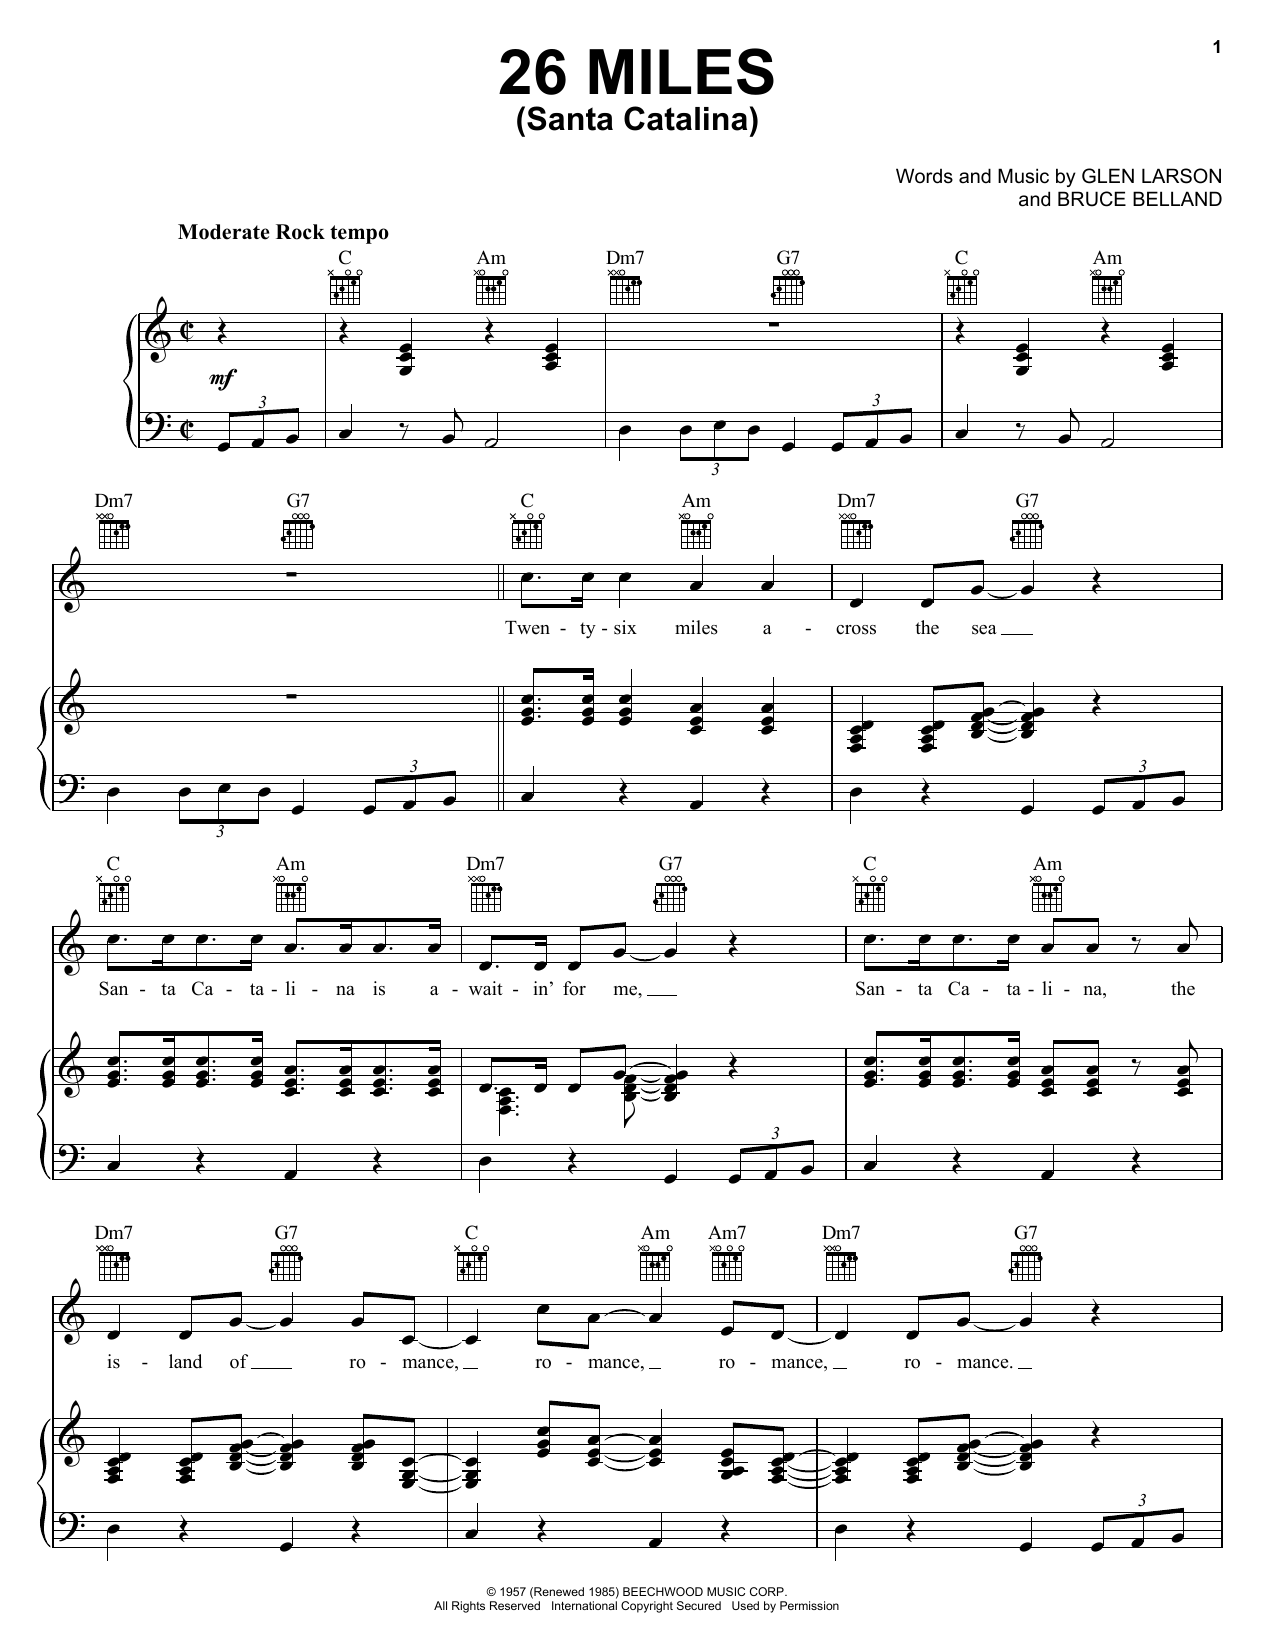 Four Preps 26 Miles (Santa Catalina) sheet music notes and chords